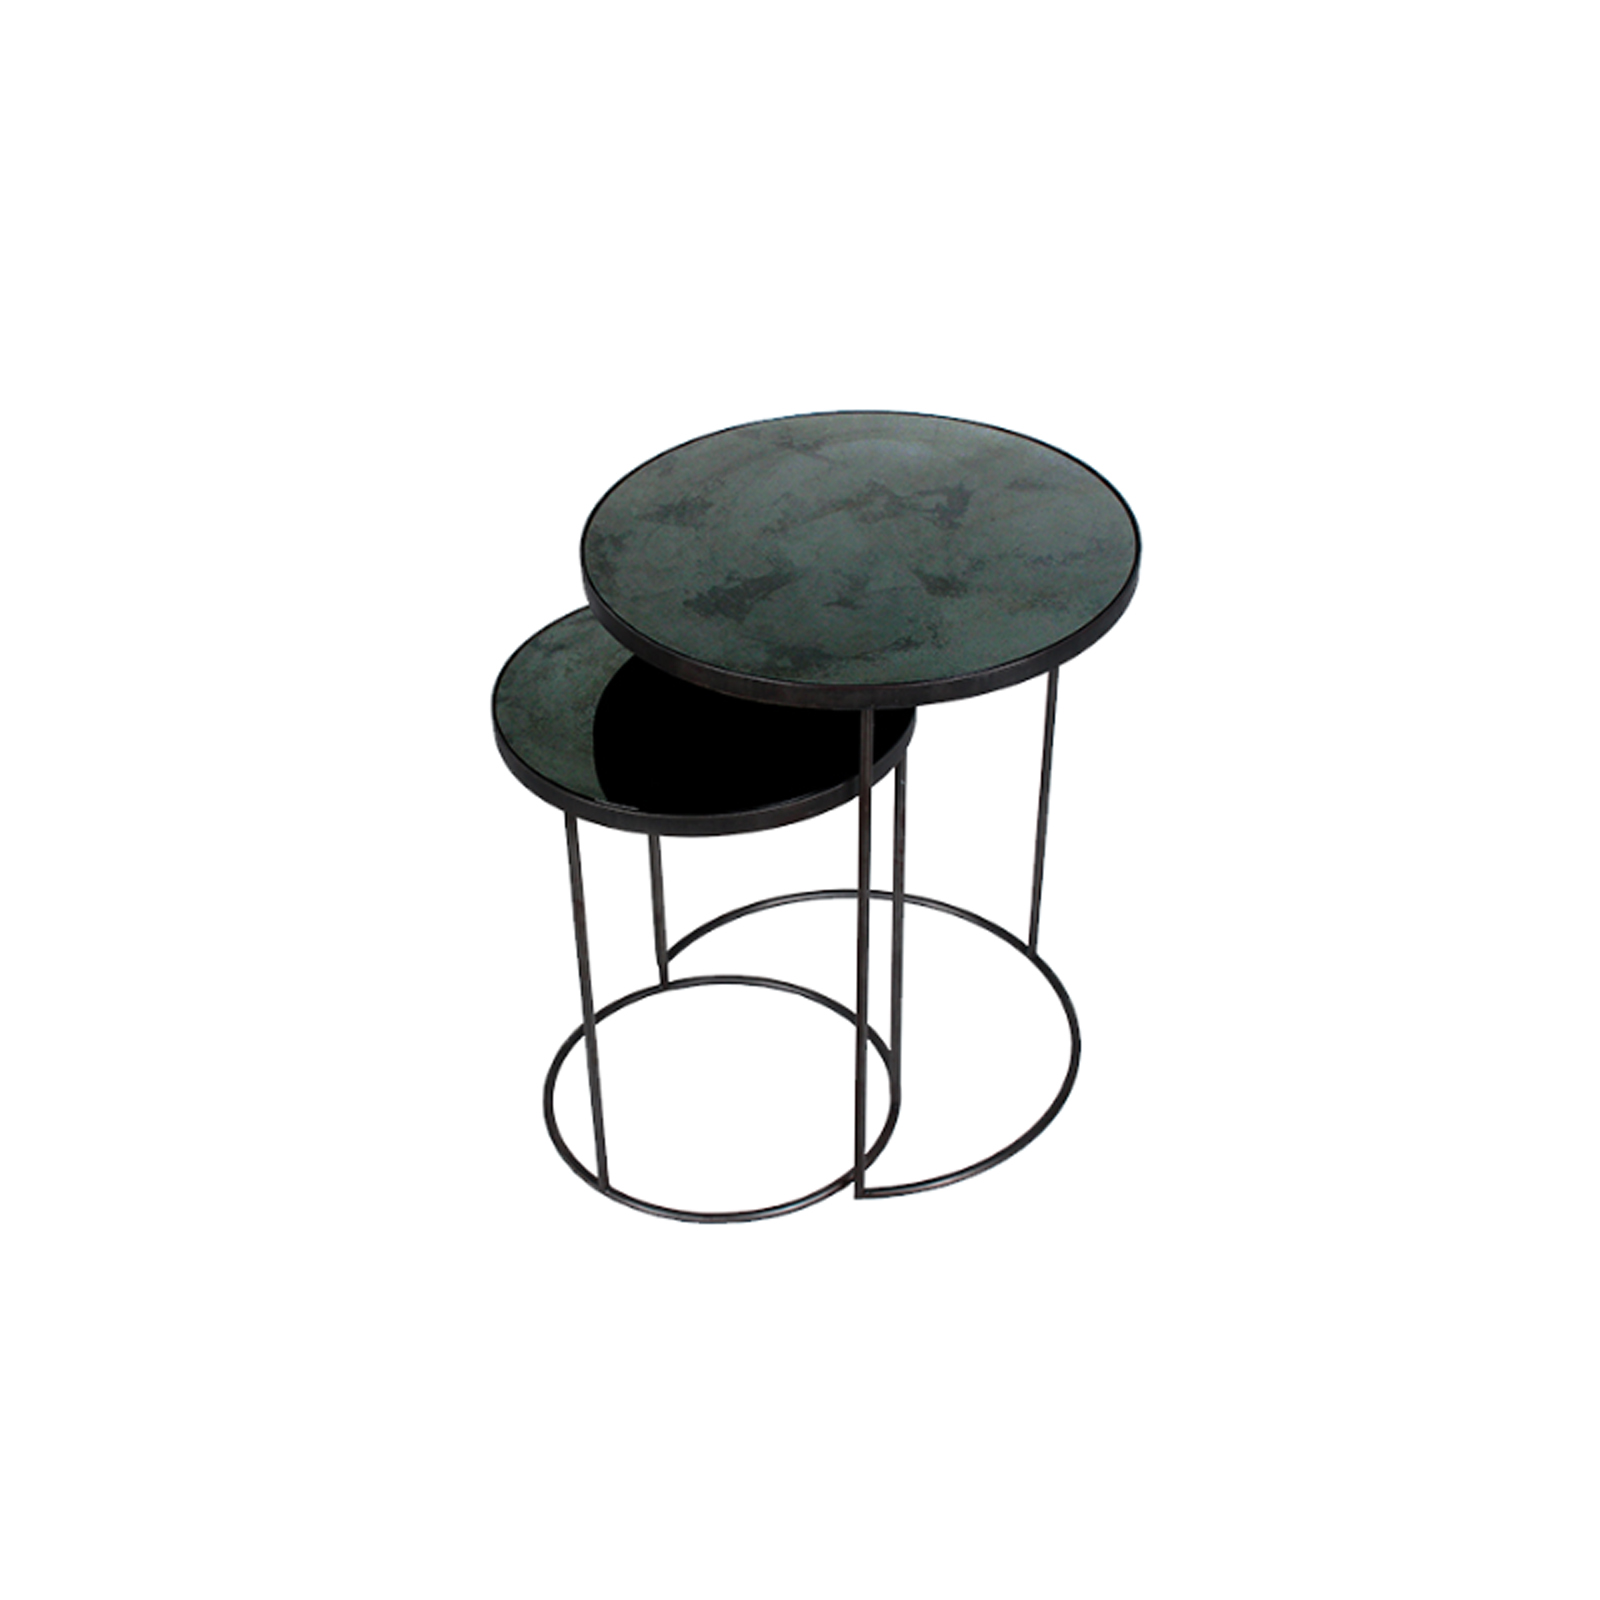 Notre Monde - Nesting Side Table - Charcoal